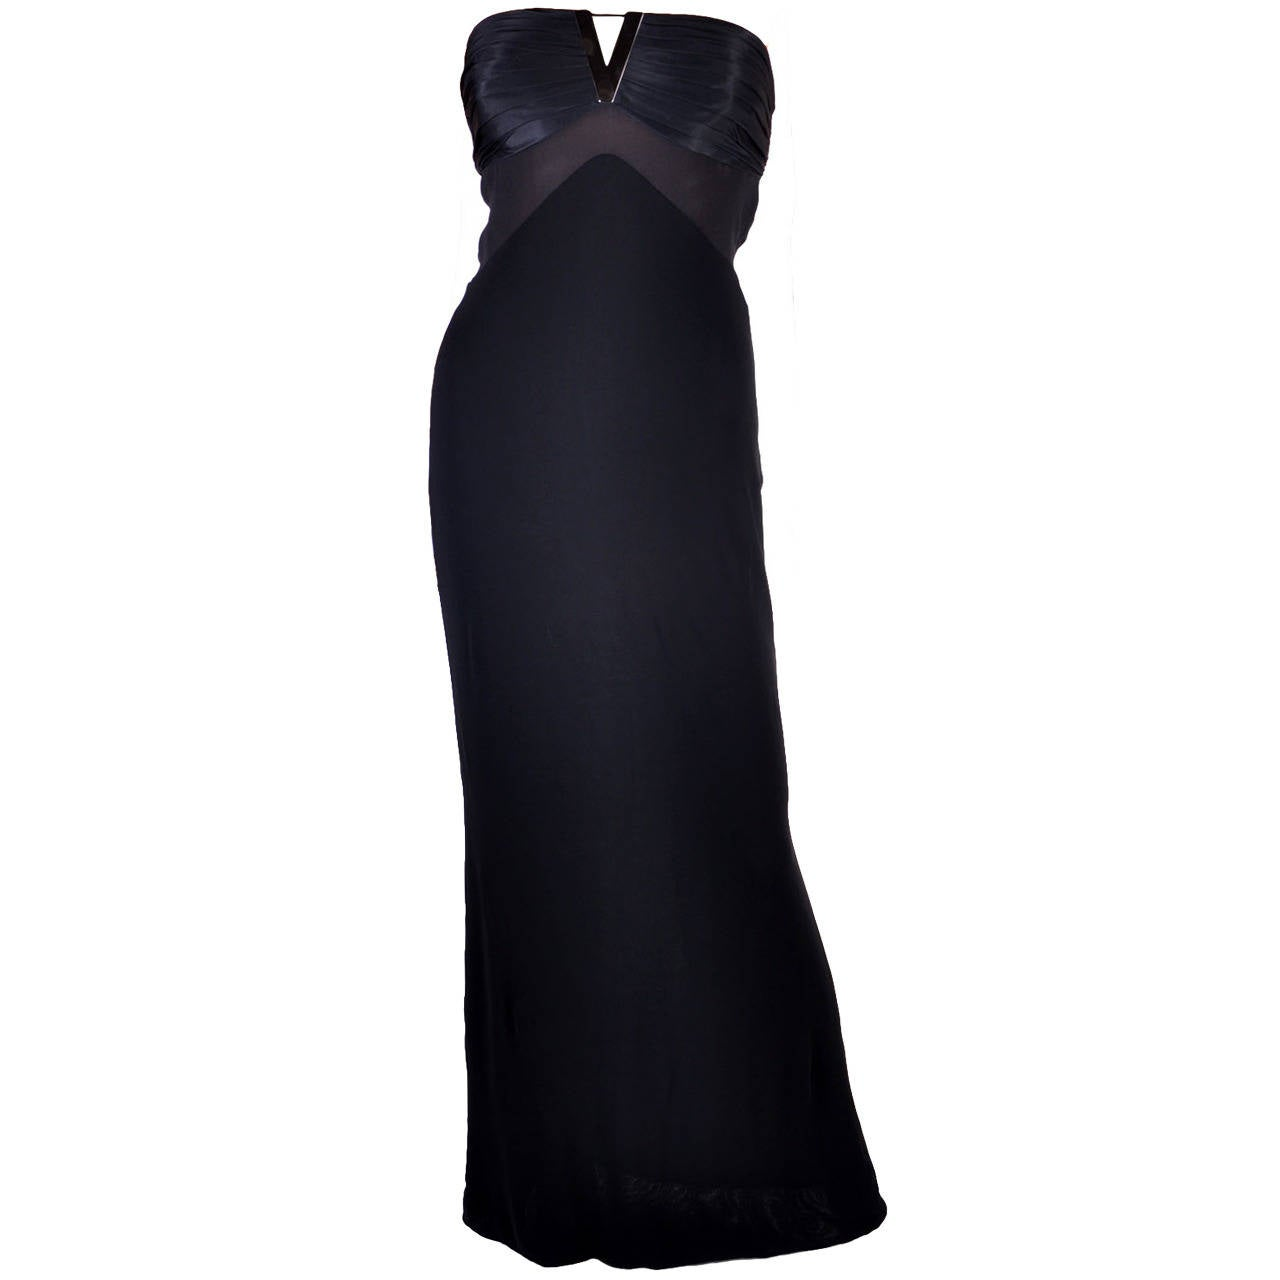 New VERSACE BLACK STRAPLESS DRESS GOWN For Sale